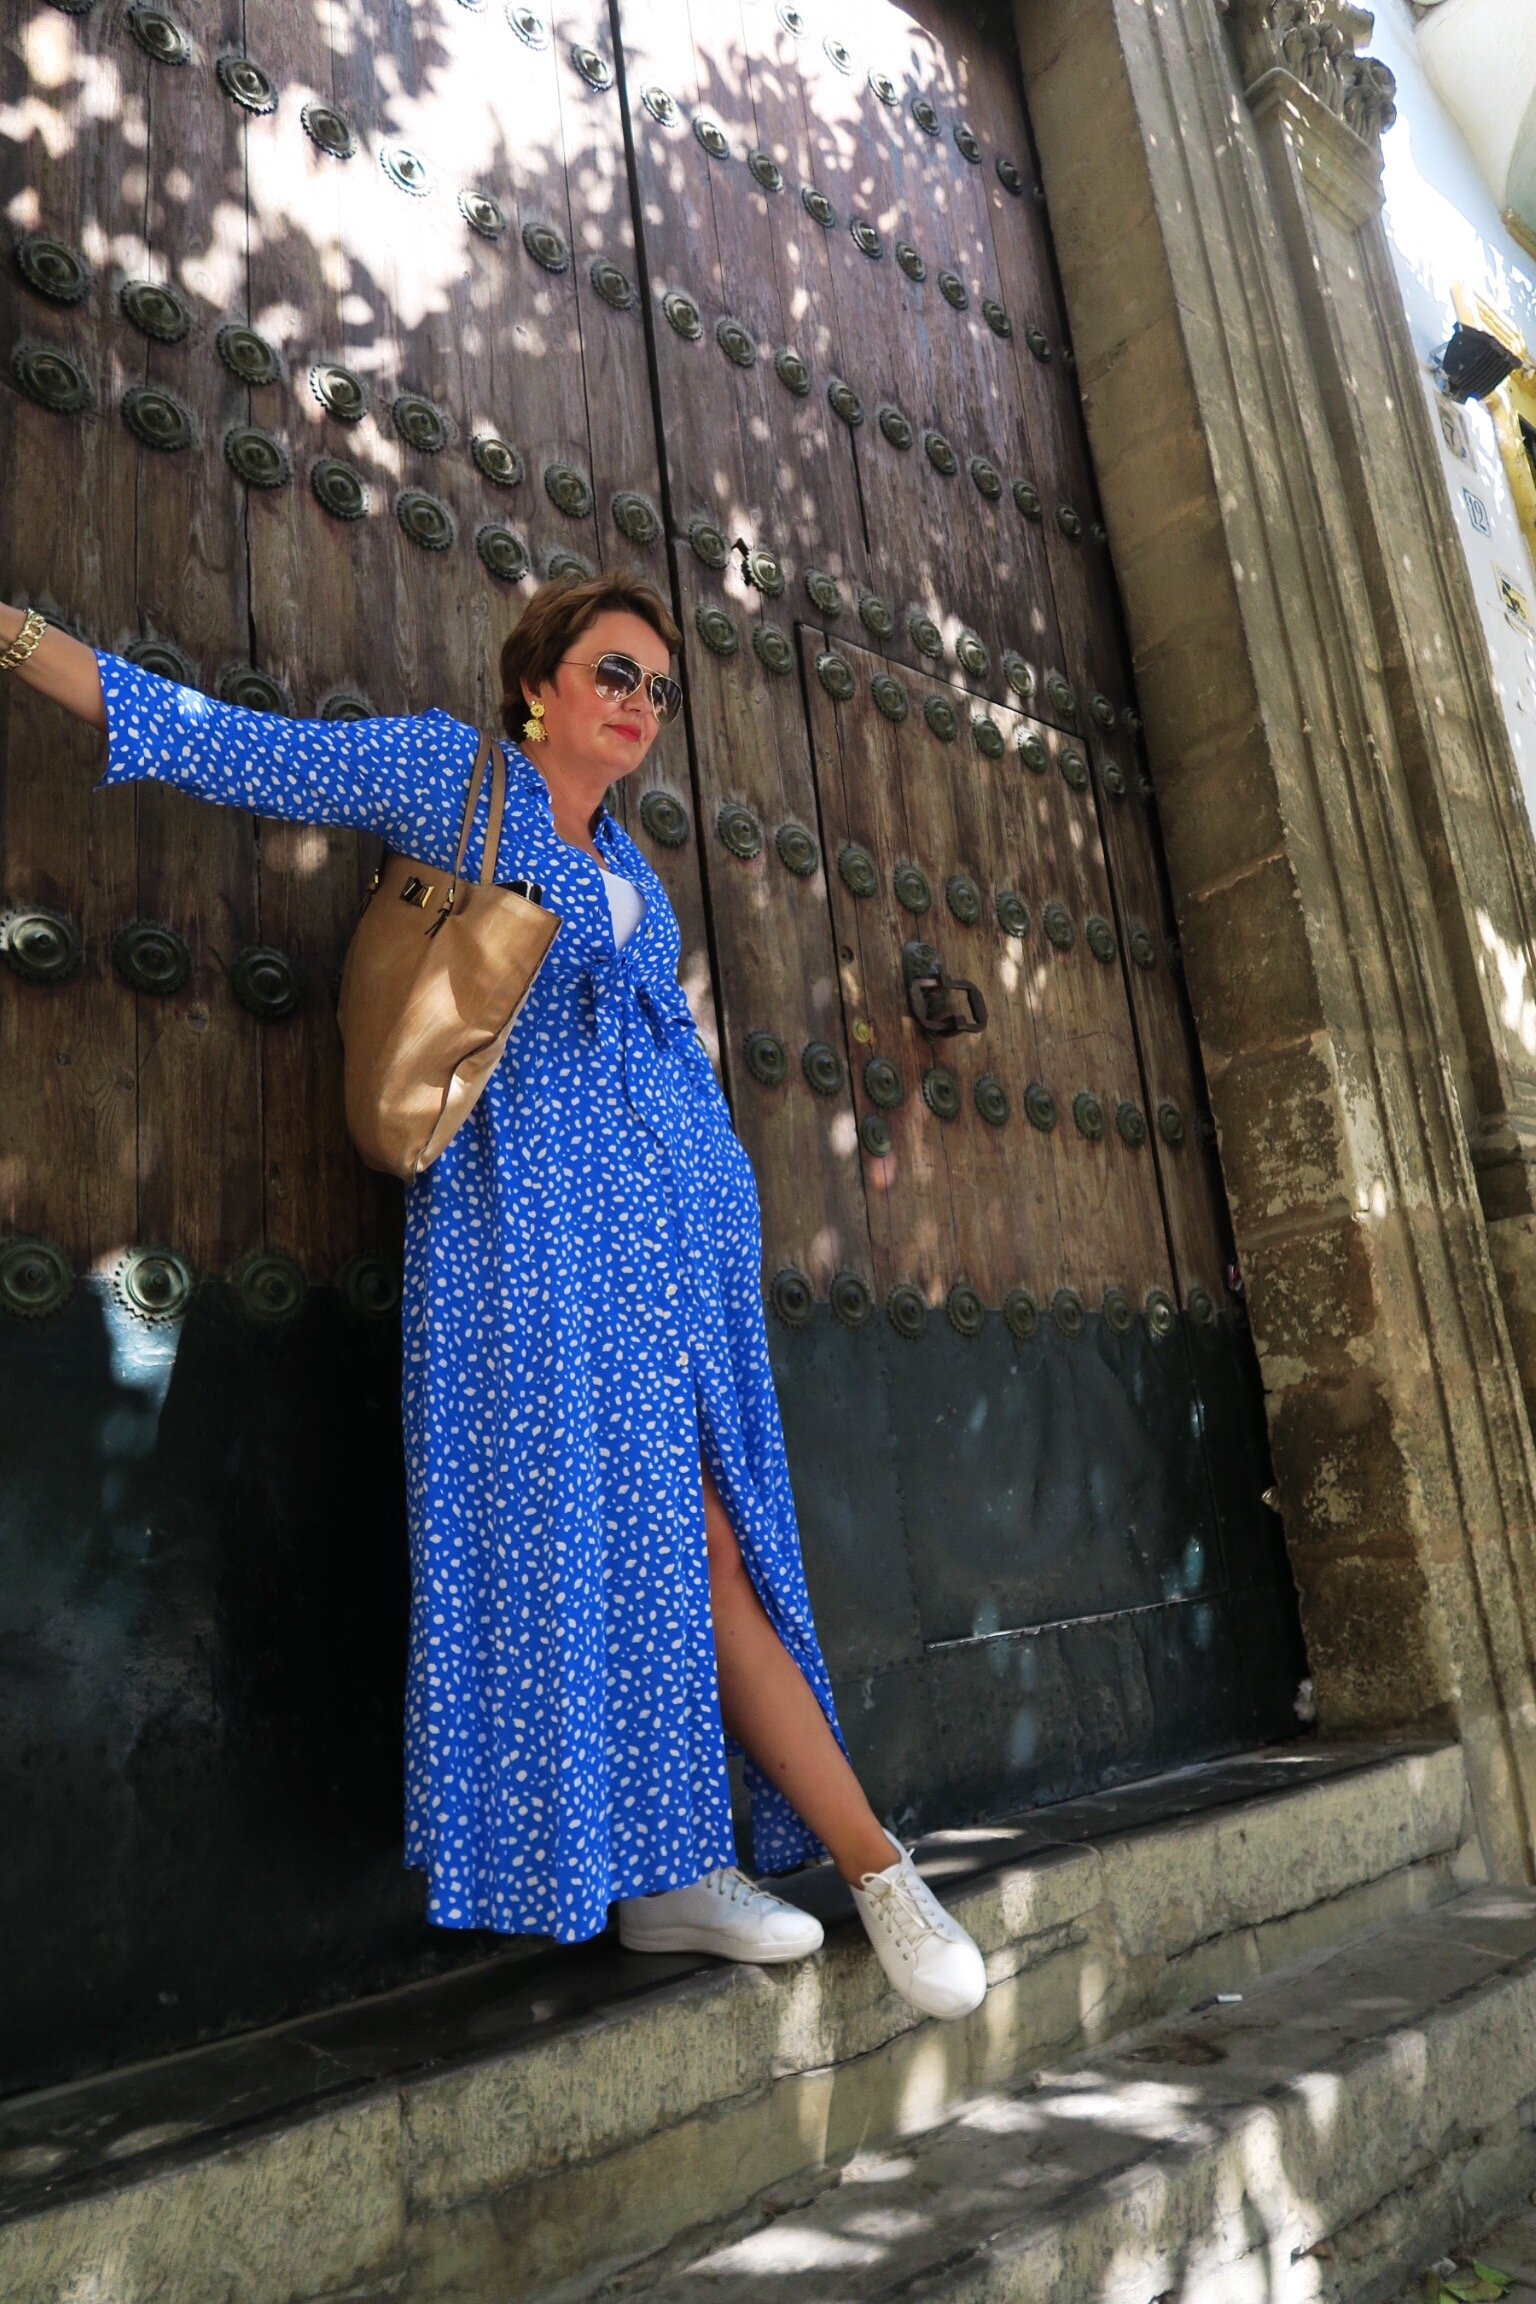 Susie Cormack Bruce wearing Zara dress and Fitflops on Sincerely Yours Susie blog post on Seville.JPG